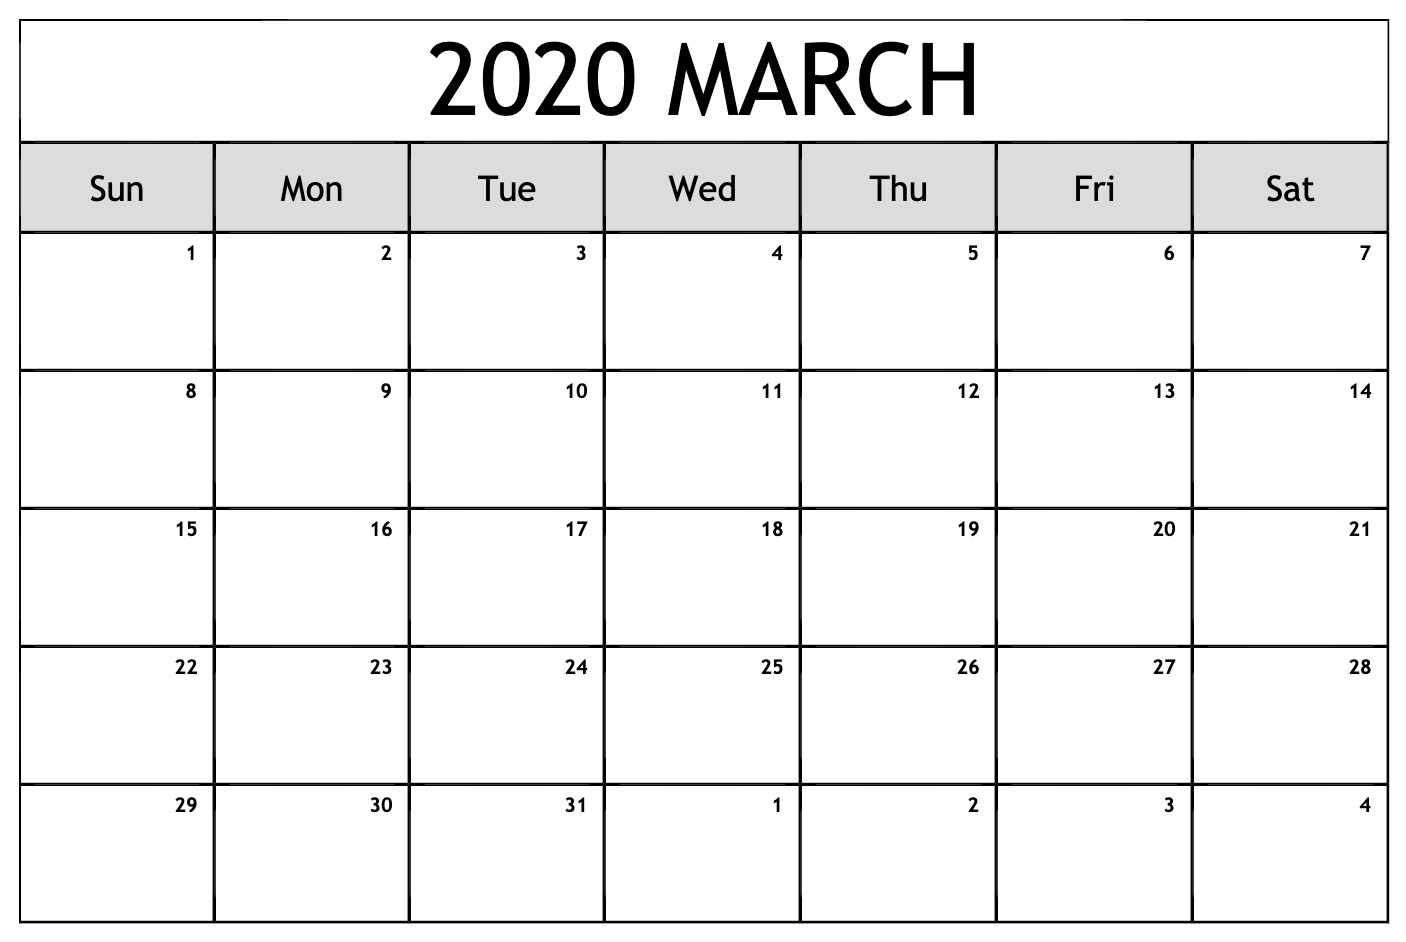 Download March 2020 Calendar With Holidays